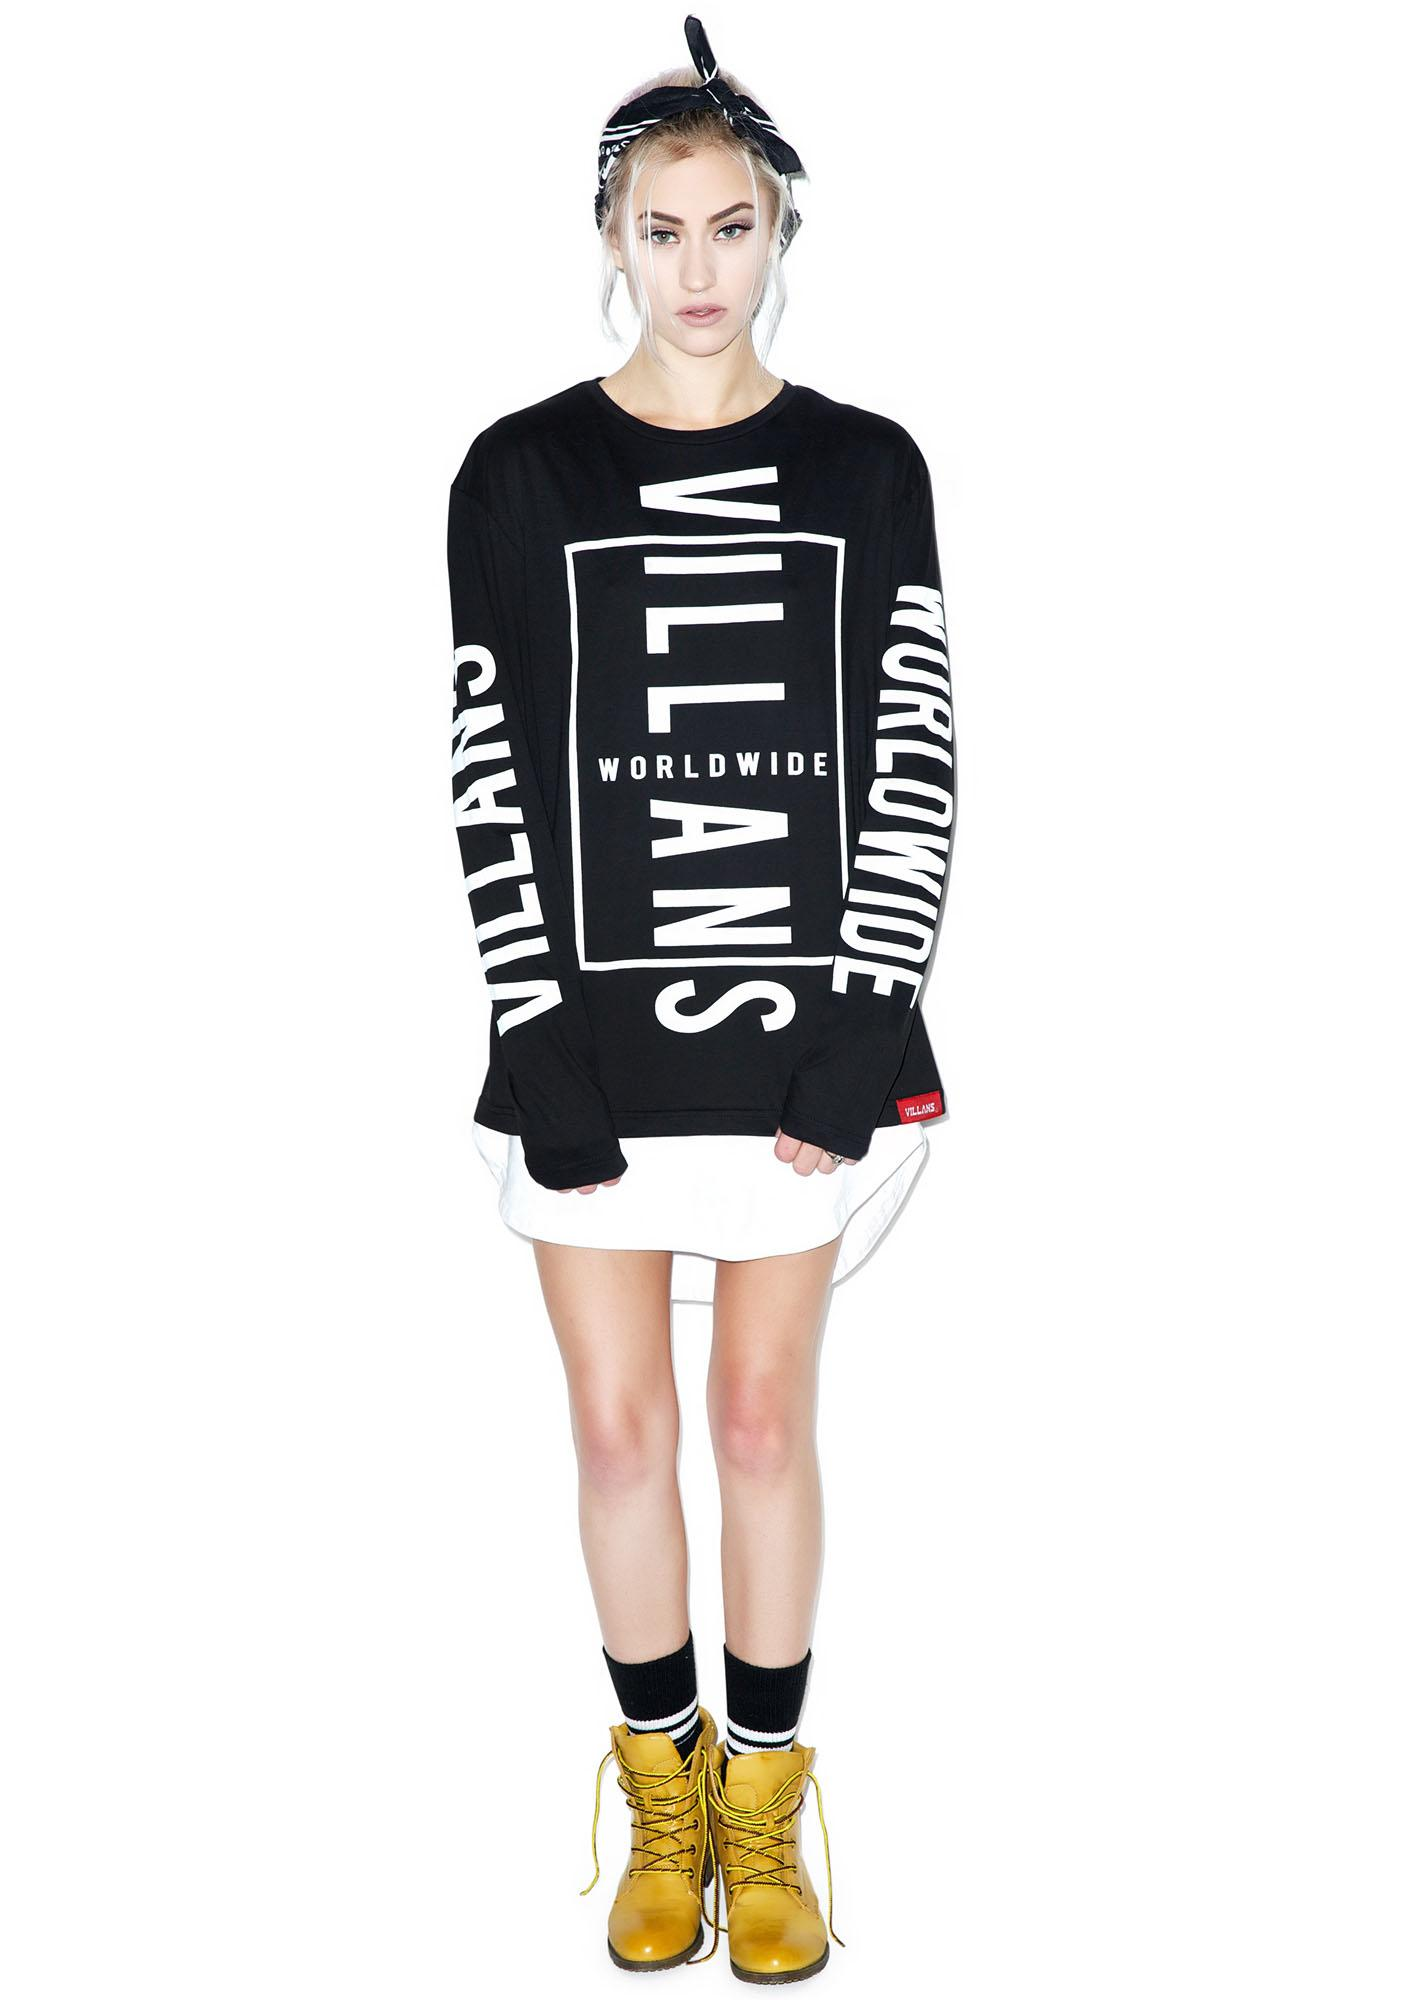 Villans Villans Worldwide Long Sleeve Tee